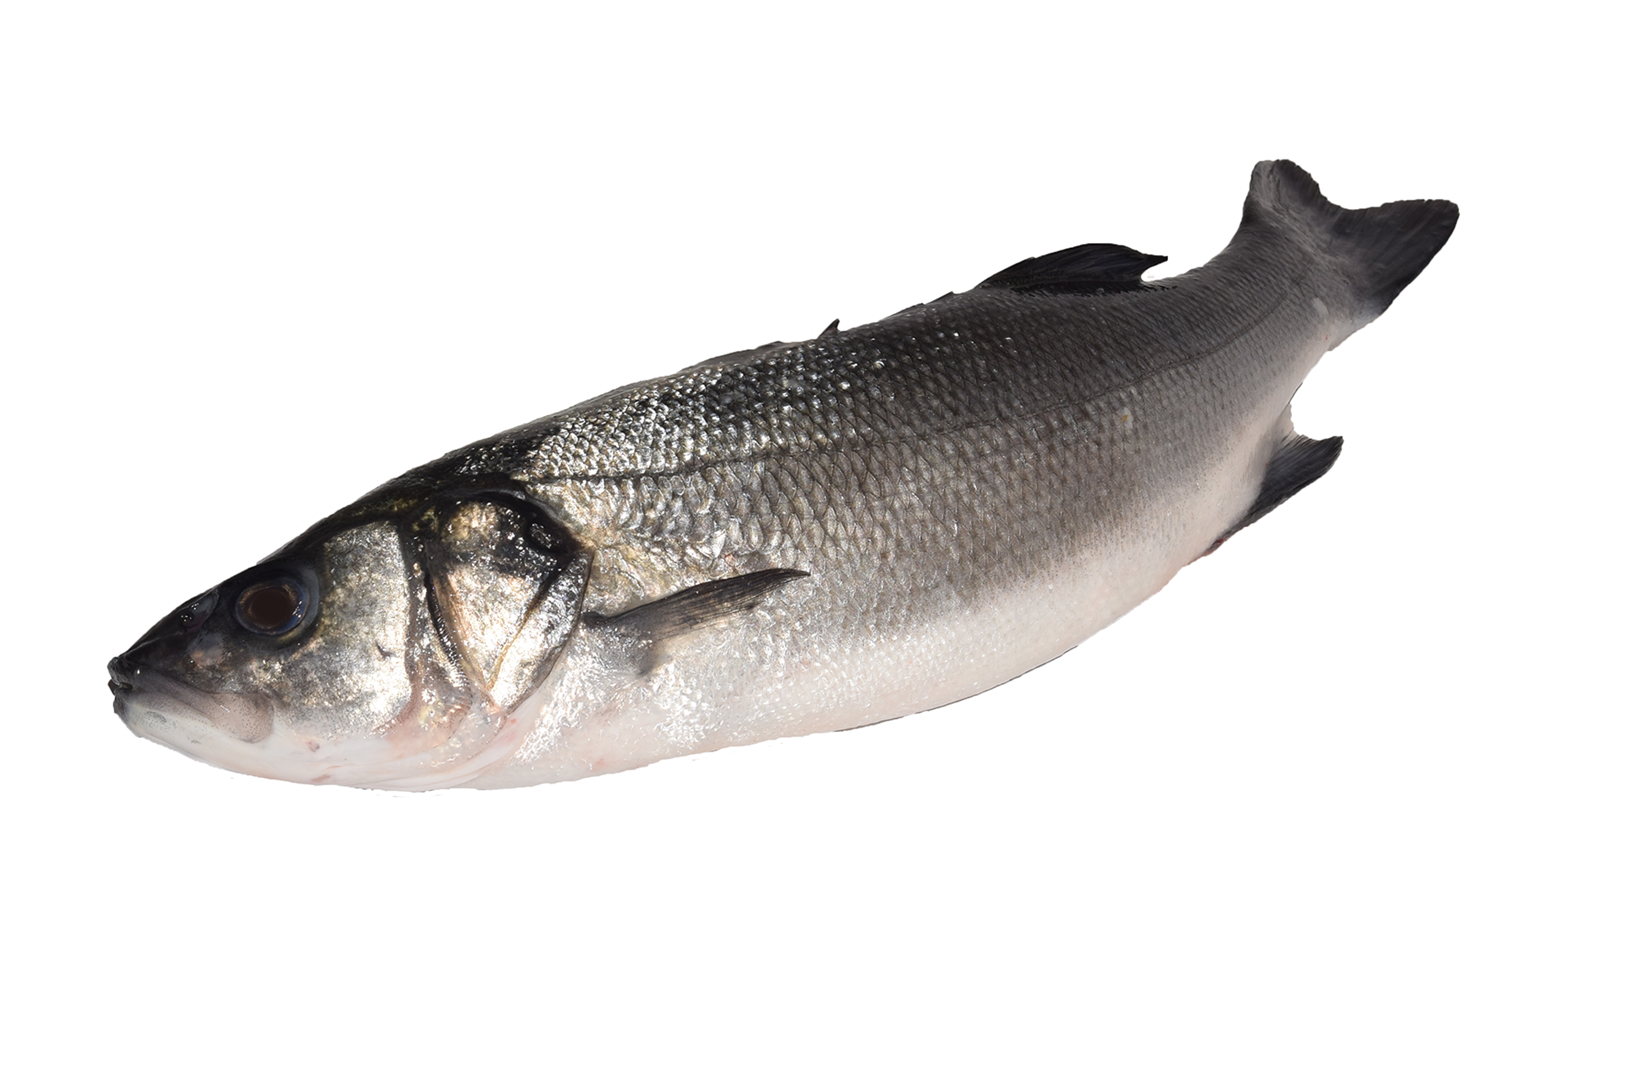 Productafbeelding SEABASS WHOLE FRESH,SIZE: 400-600 GR. SEABASS WHOLE FRESH,SIZE: 400-600 GR.